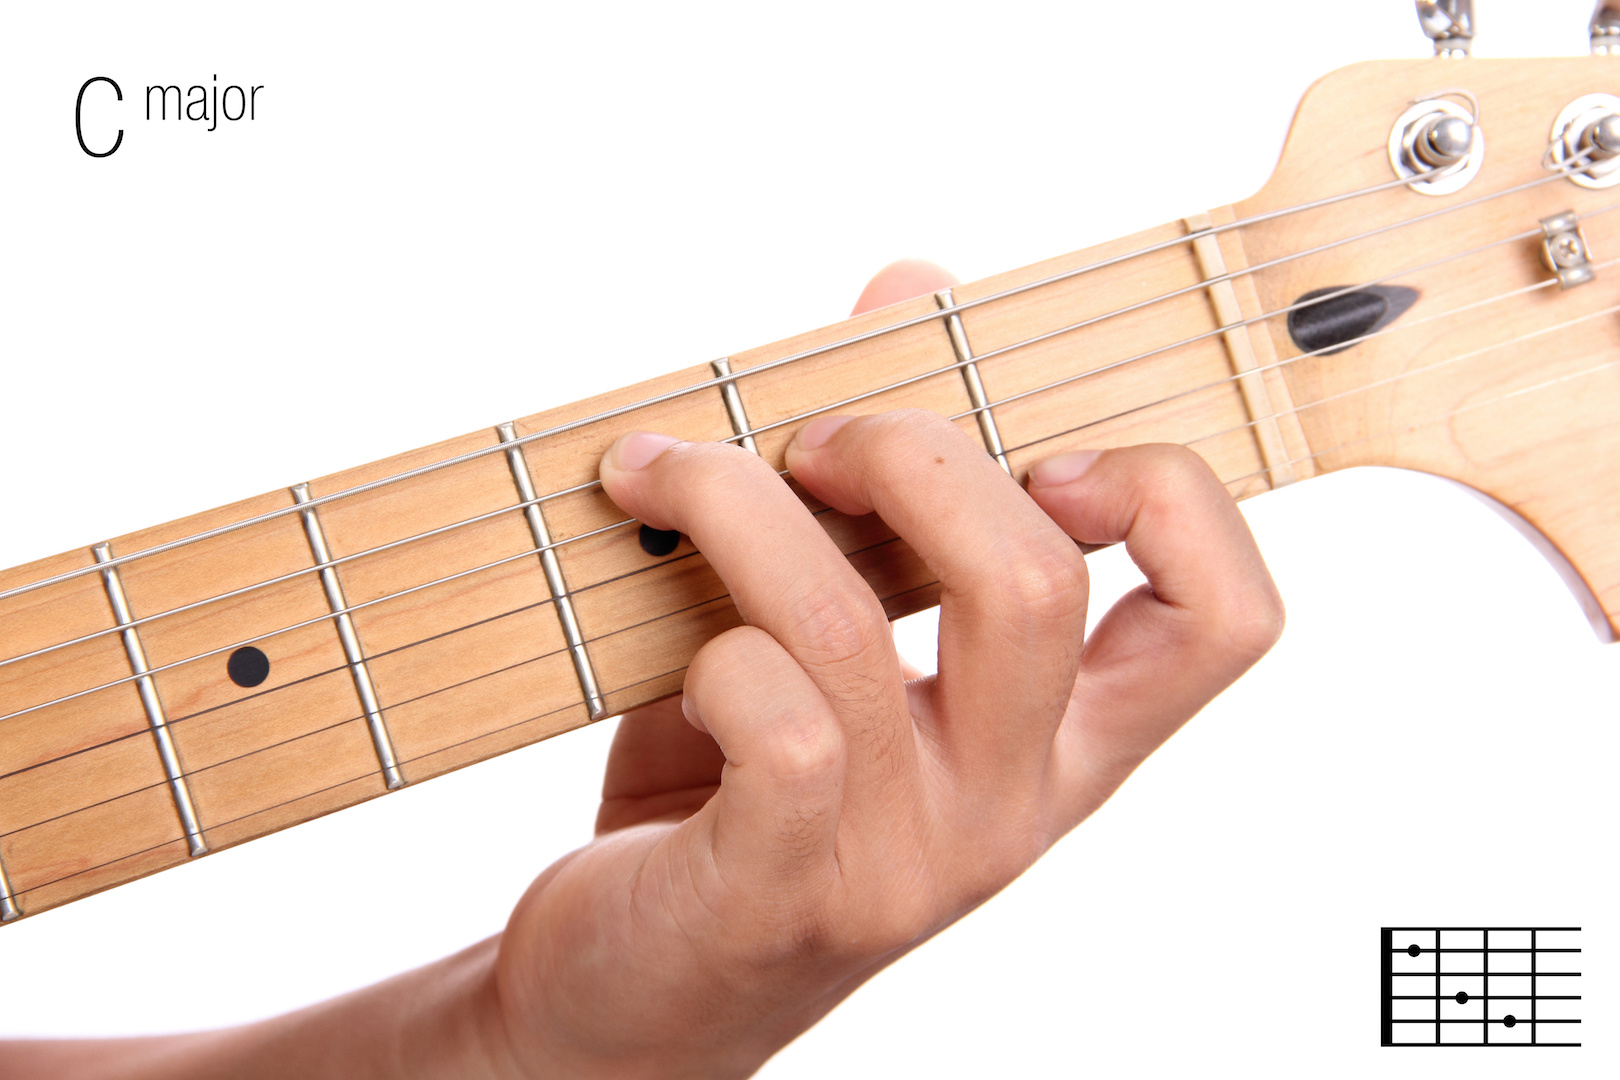 C Chord on Guitar History, Chord Shapes, Major Scale, Songs etc